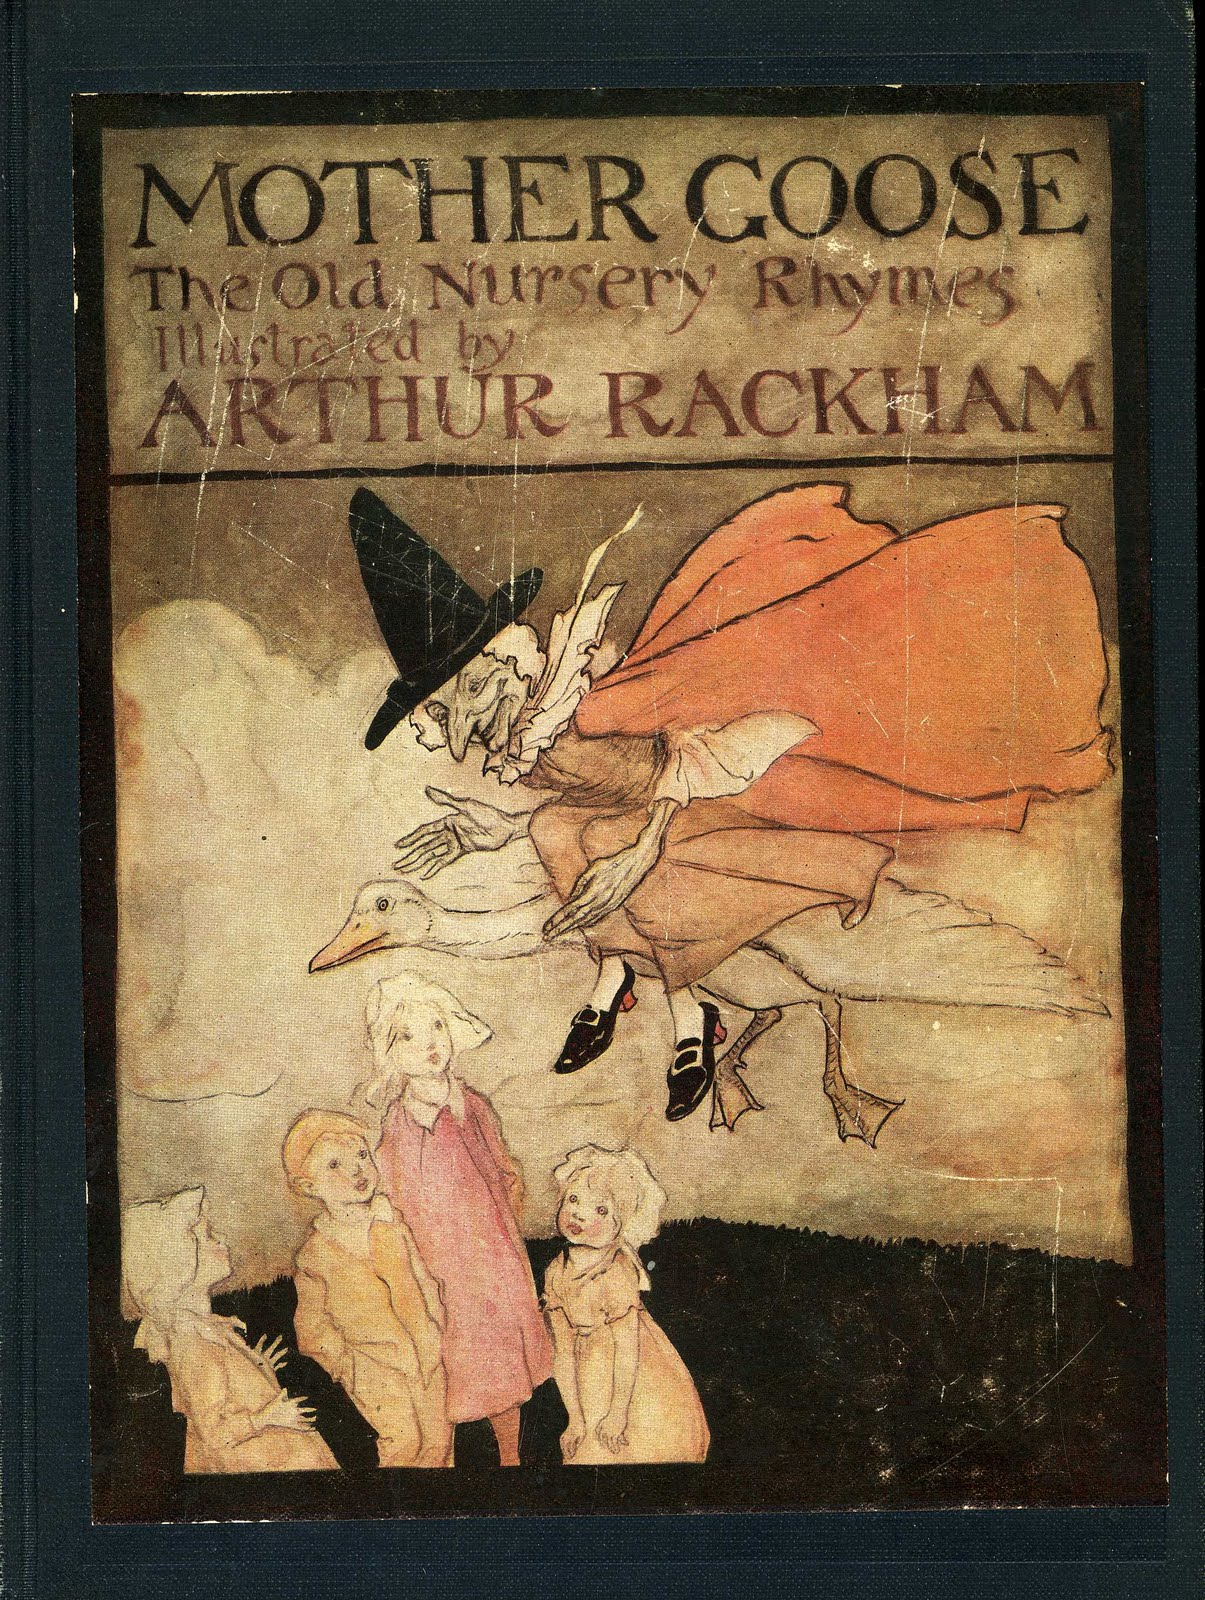 I Then Pulled A Few More Ma Goose Books From The Shelf And They Also Supported My Theory Hey Subsute Broomstick For That She S Flying You